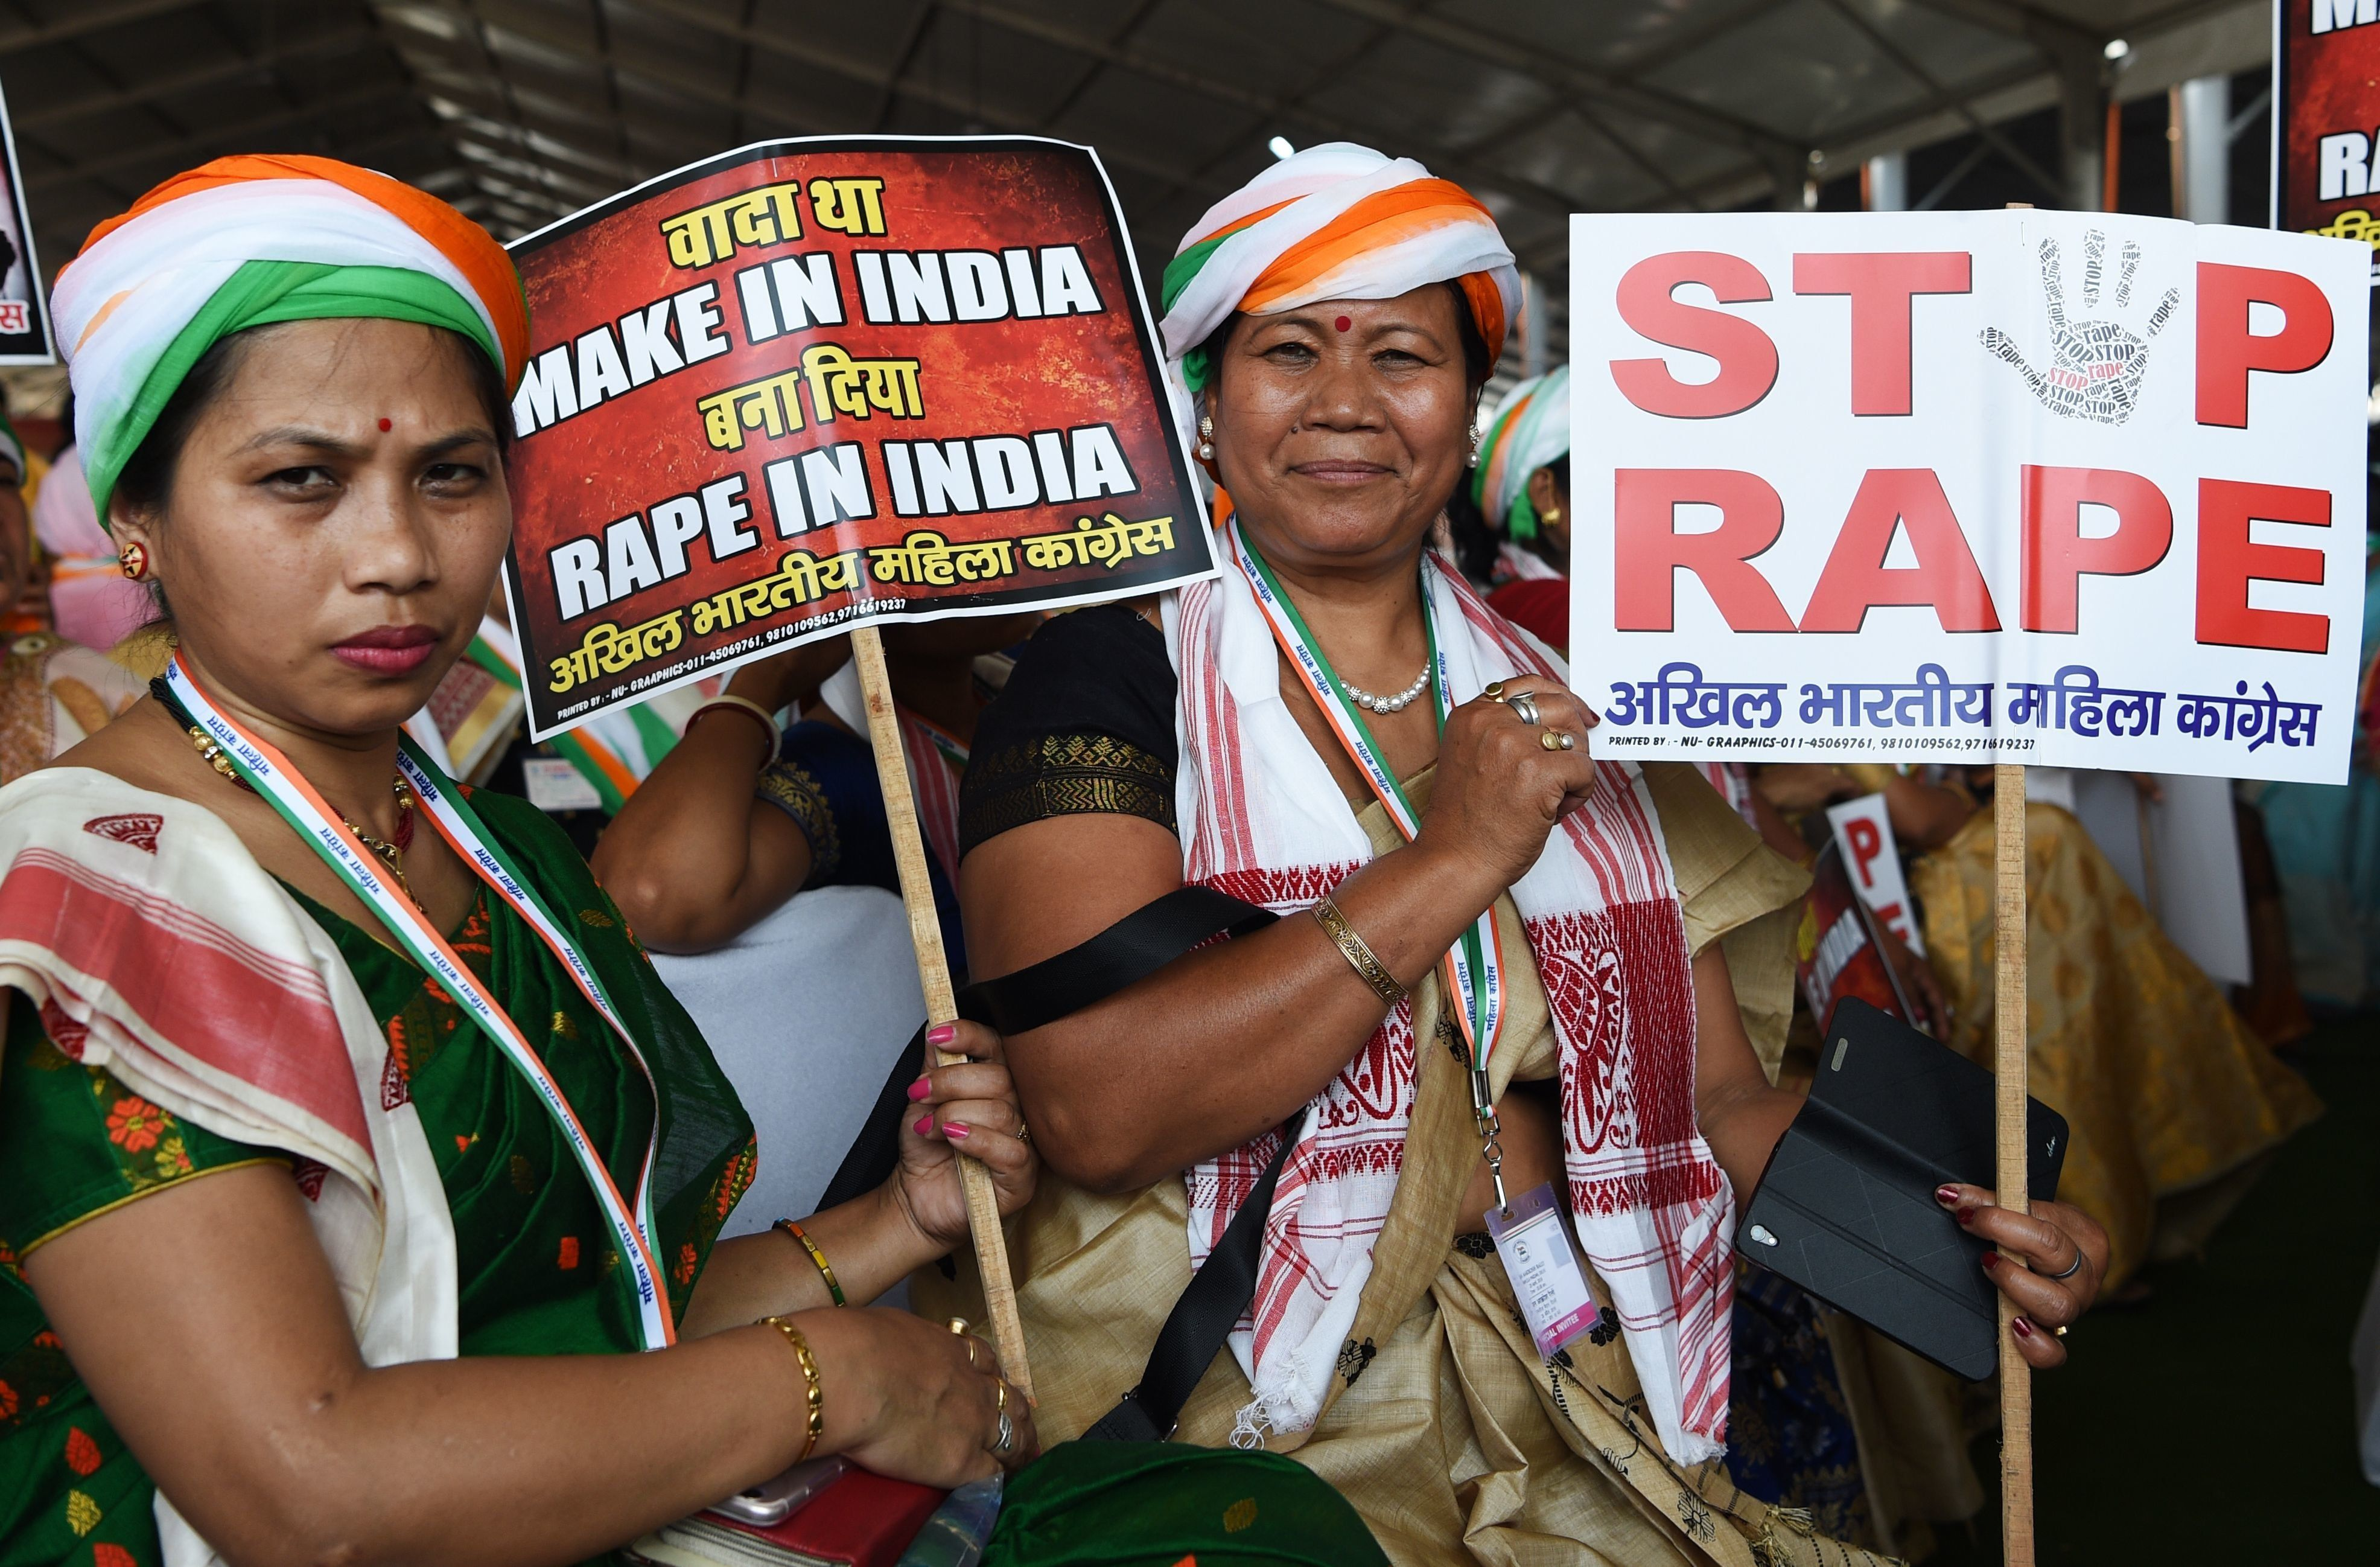 3-Year-Old-Indian Girl Raped On 6th Anniversary Of Brutal Delhi Gang